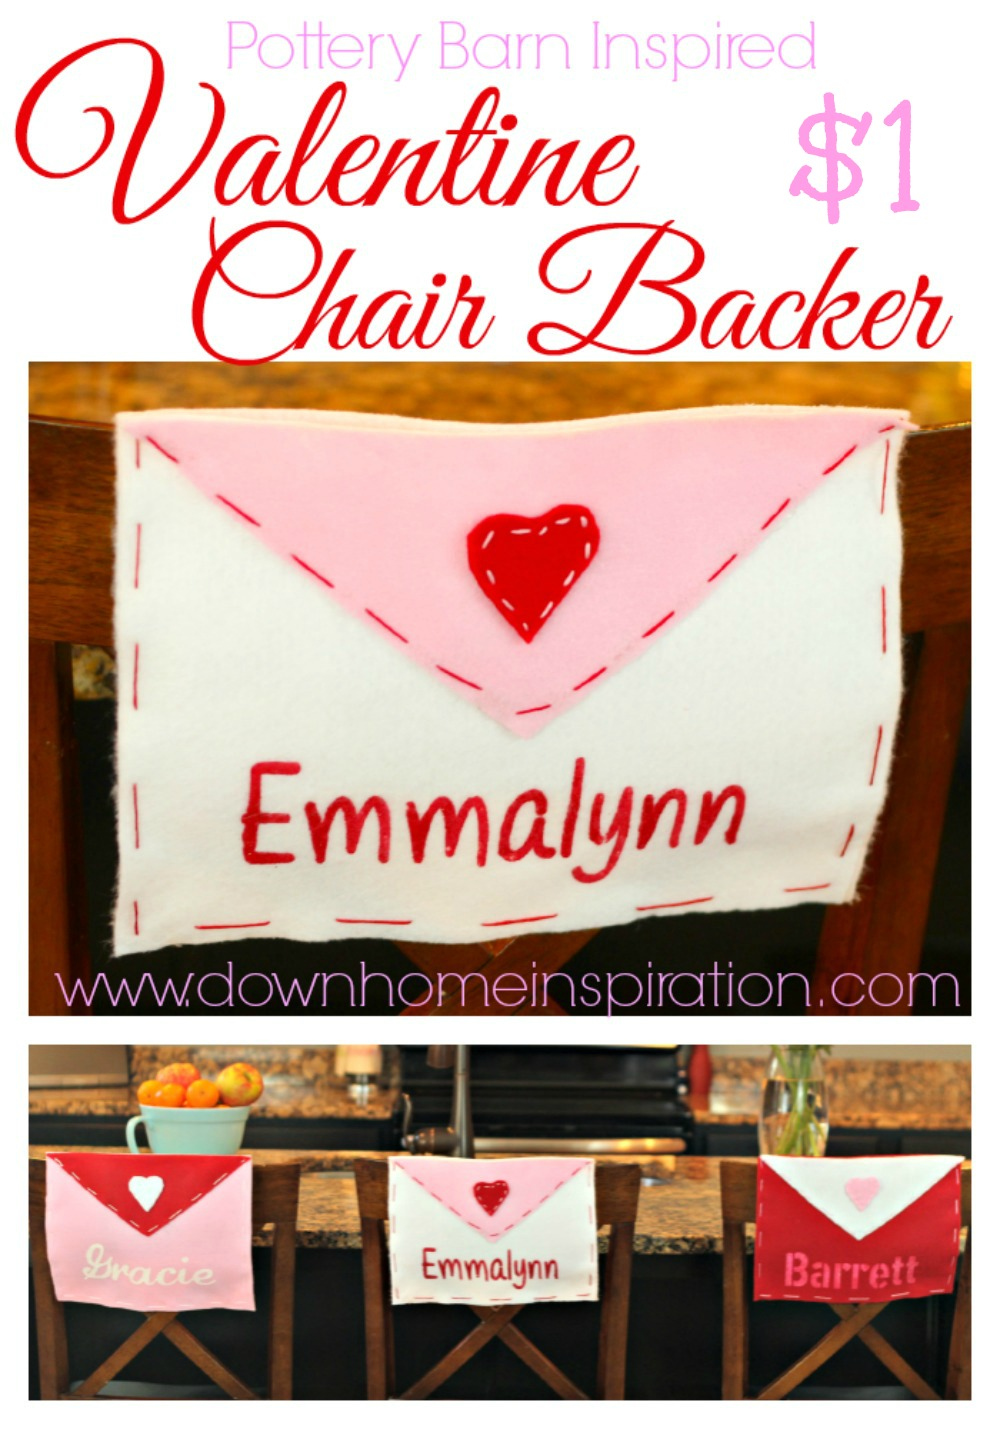 Pottery Barn Inspired Valentine Chair Backer Down Home